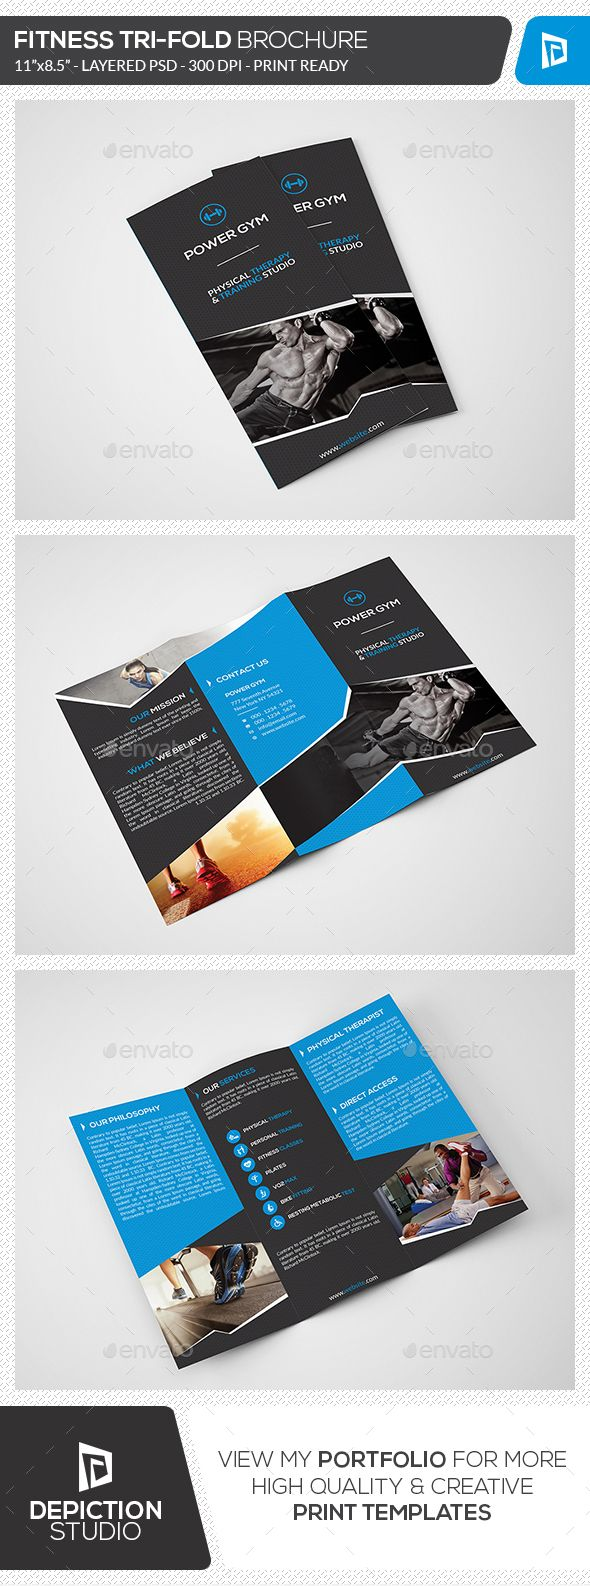 Fitness Tri-Fold Brochure Template #design Download: http://graphicriver.net/item/fitness-trifold-brochure/13102539?ref=ksioks